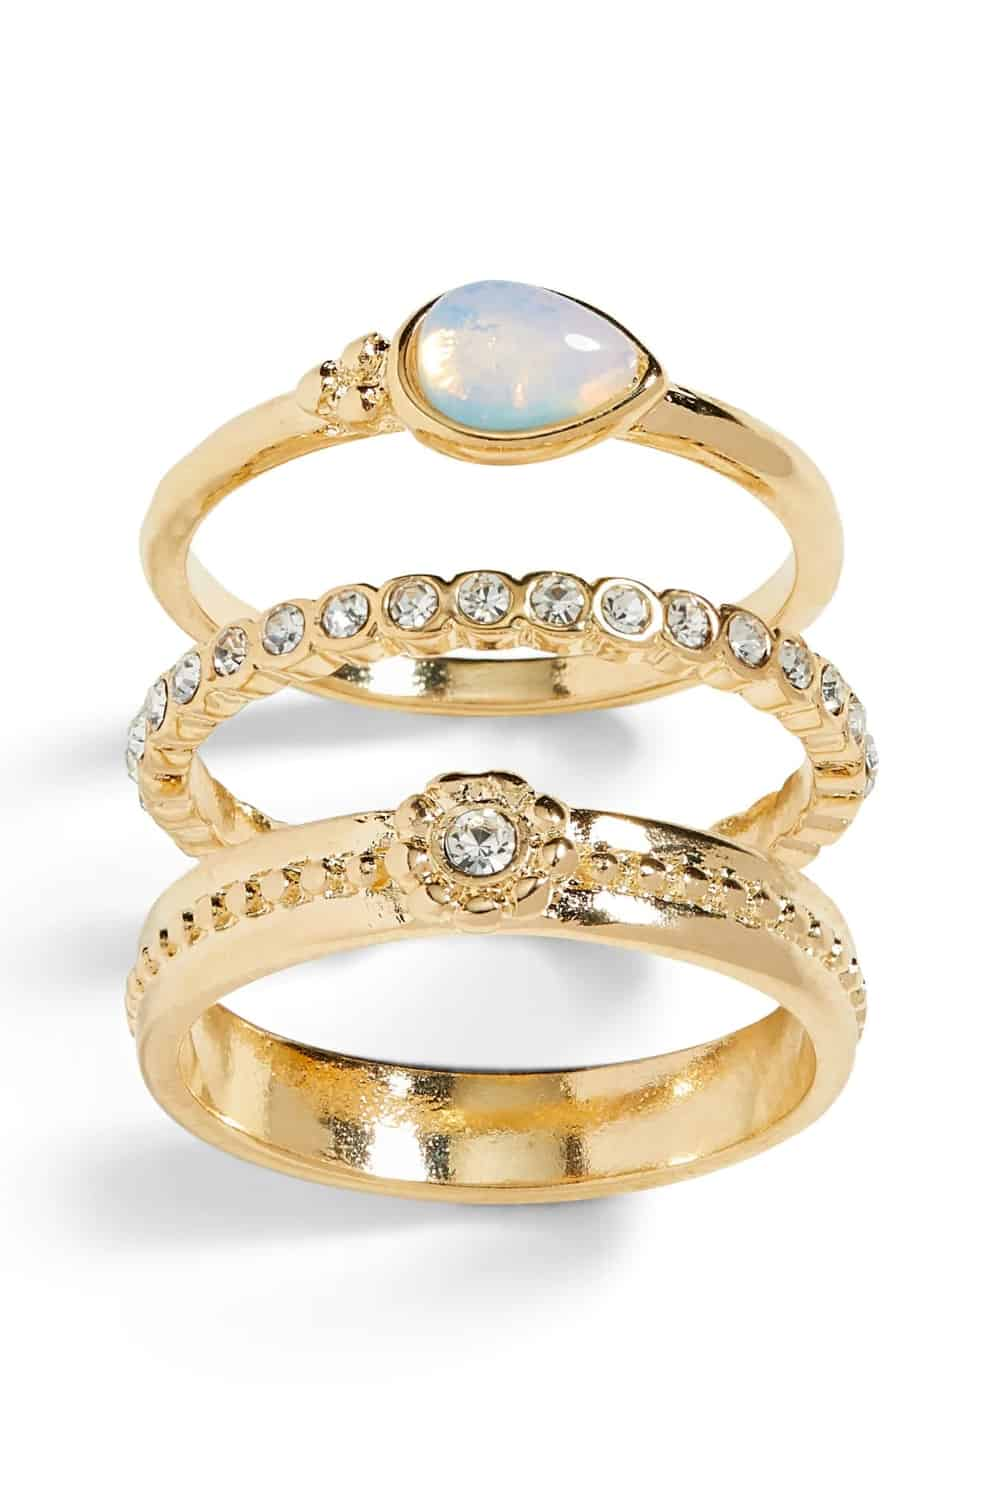 Trio Rings are Special Too